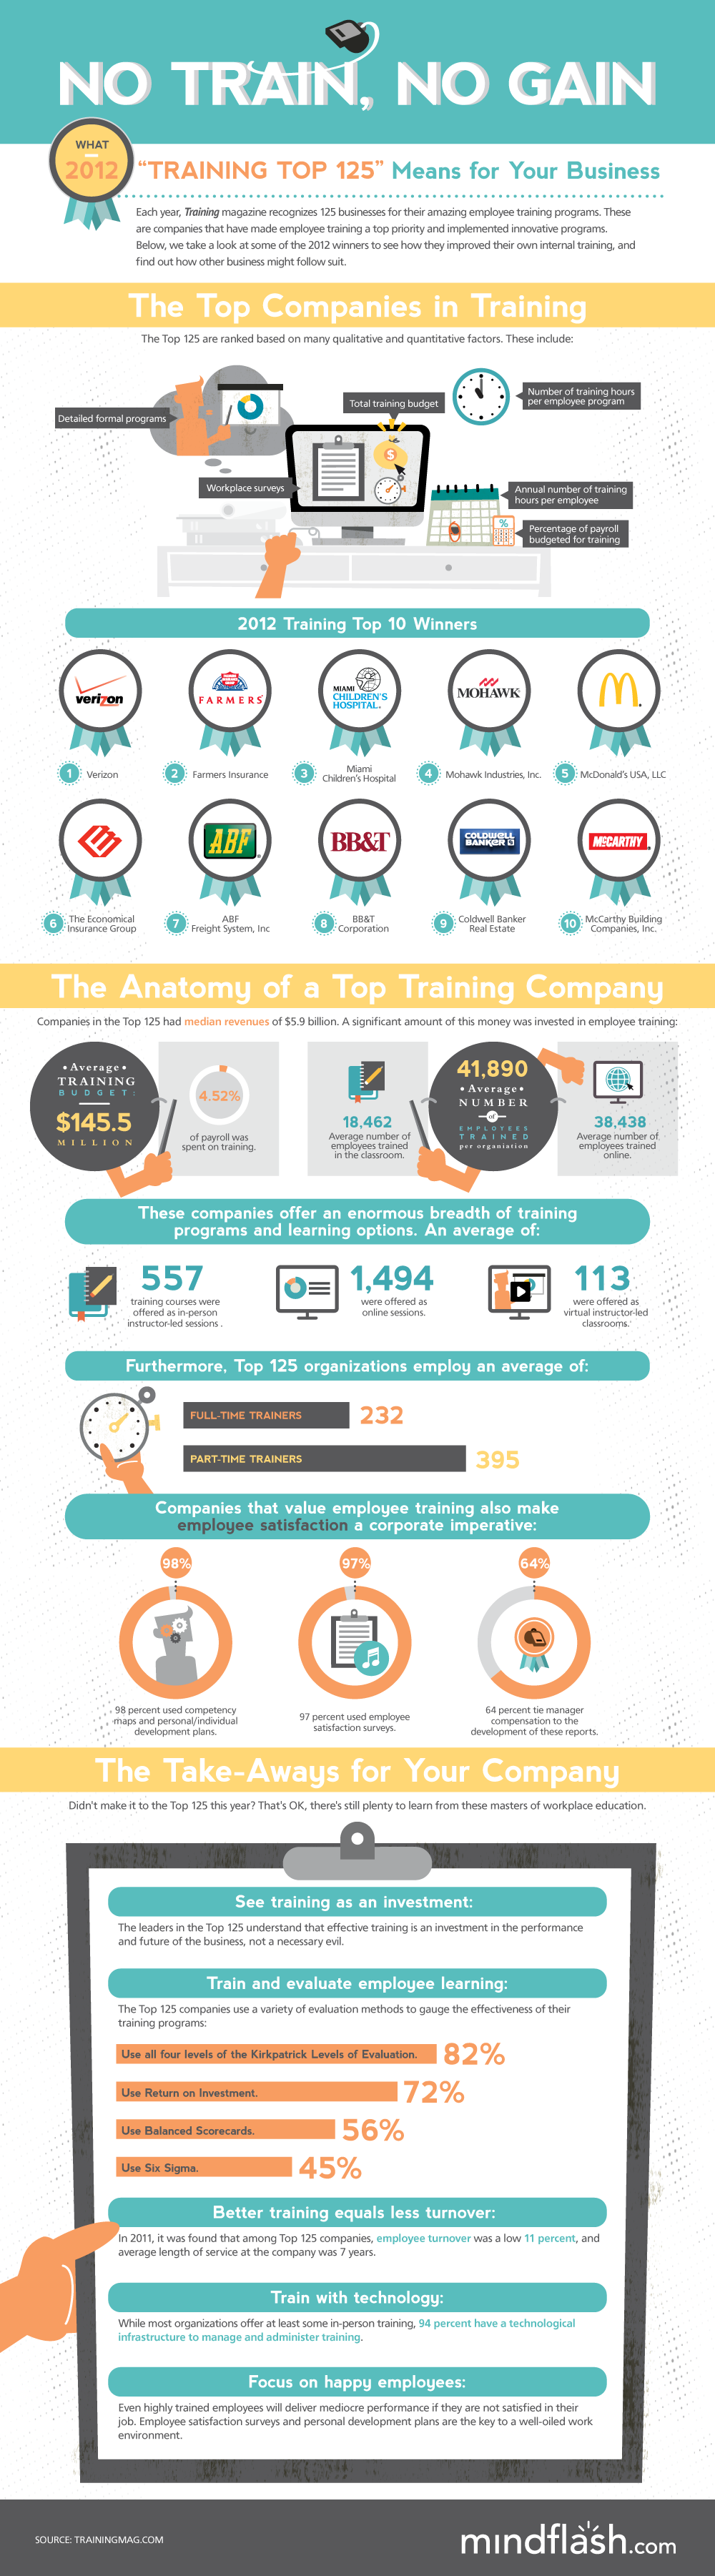 (Infographic) No Train, No Gain: What The 2012 Training Top 125 Means For Your Business